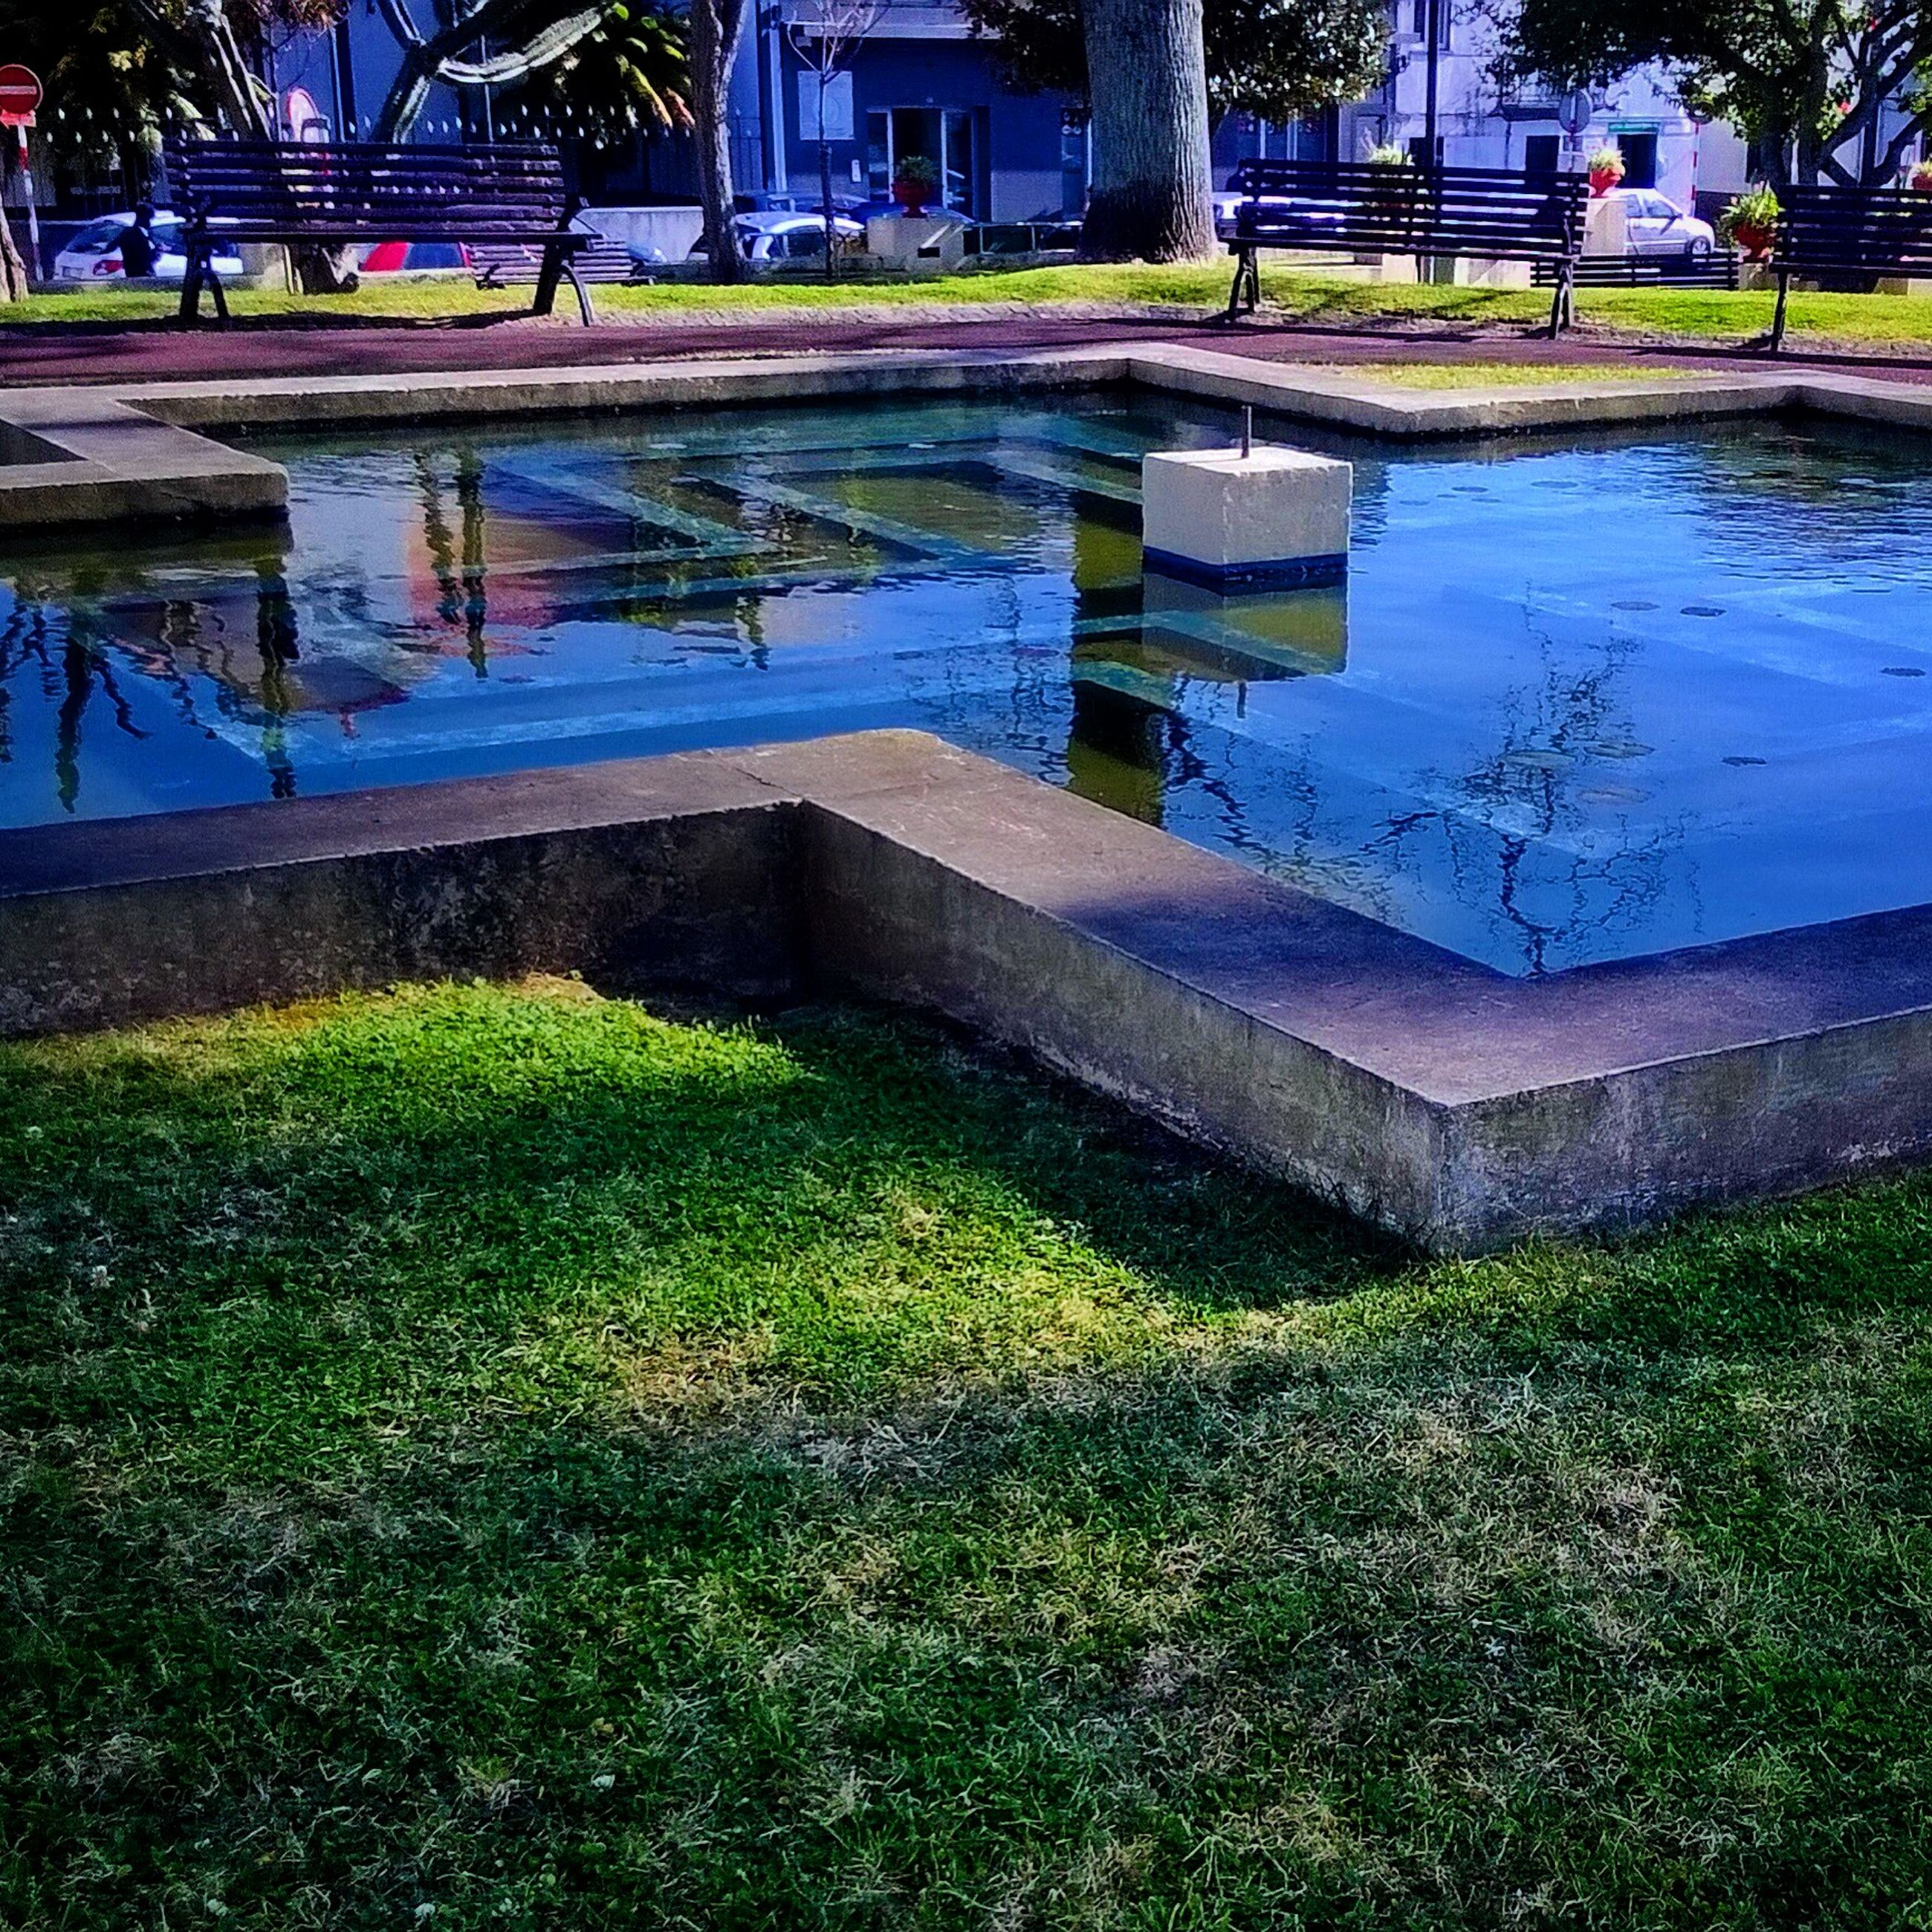 building exterior, water, architecture, built structure, grass, reflection, pond, tree, plant, park - man made space, puddle, growth, sunlight, lawn, nature, outdoors, fountain, day, green color, house